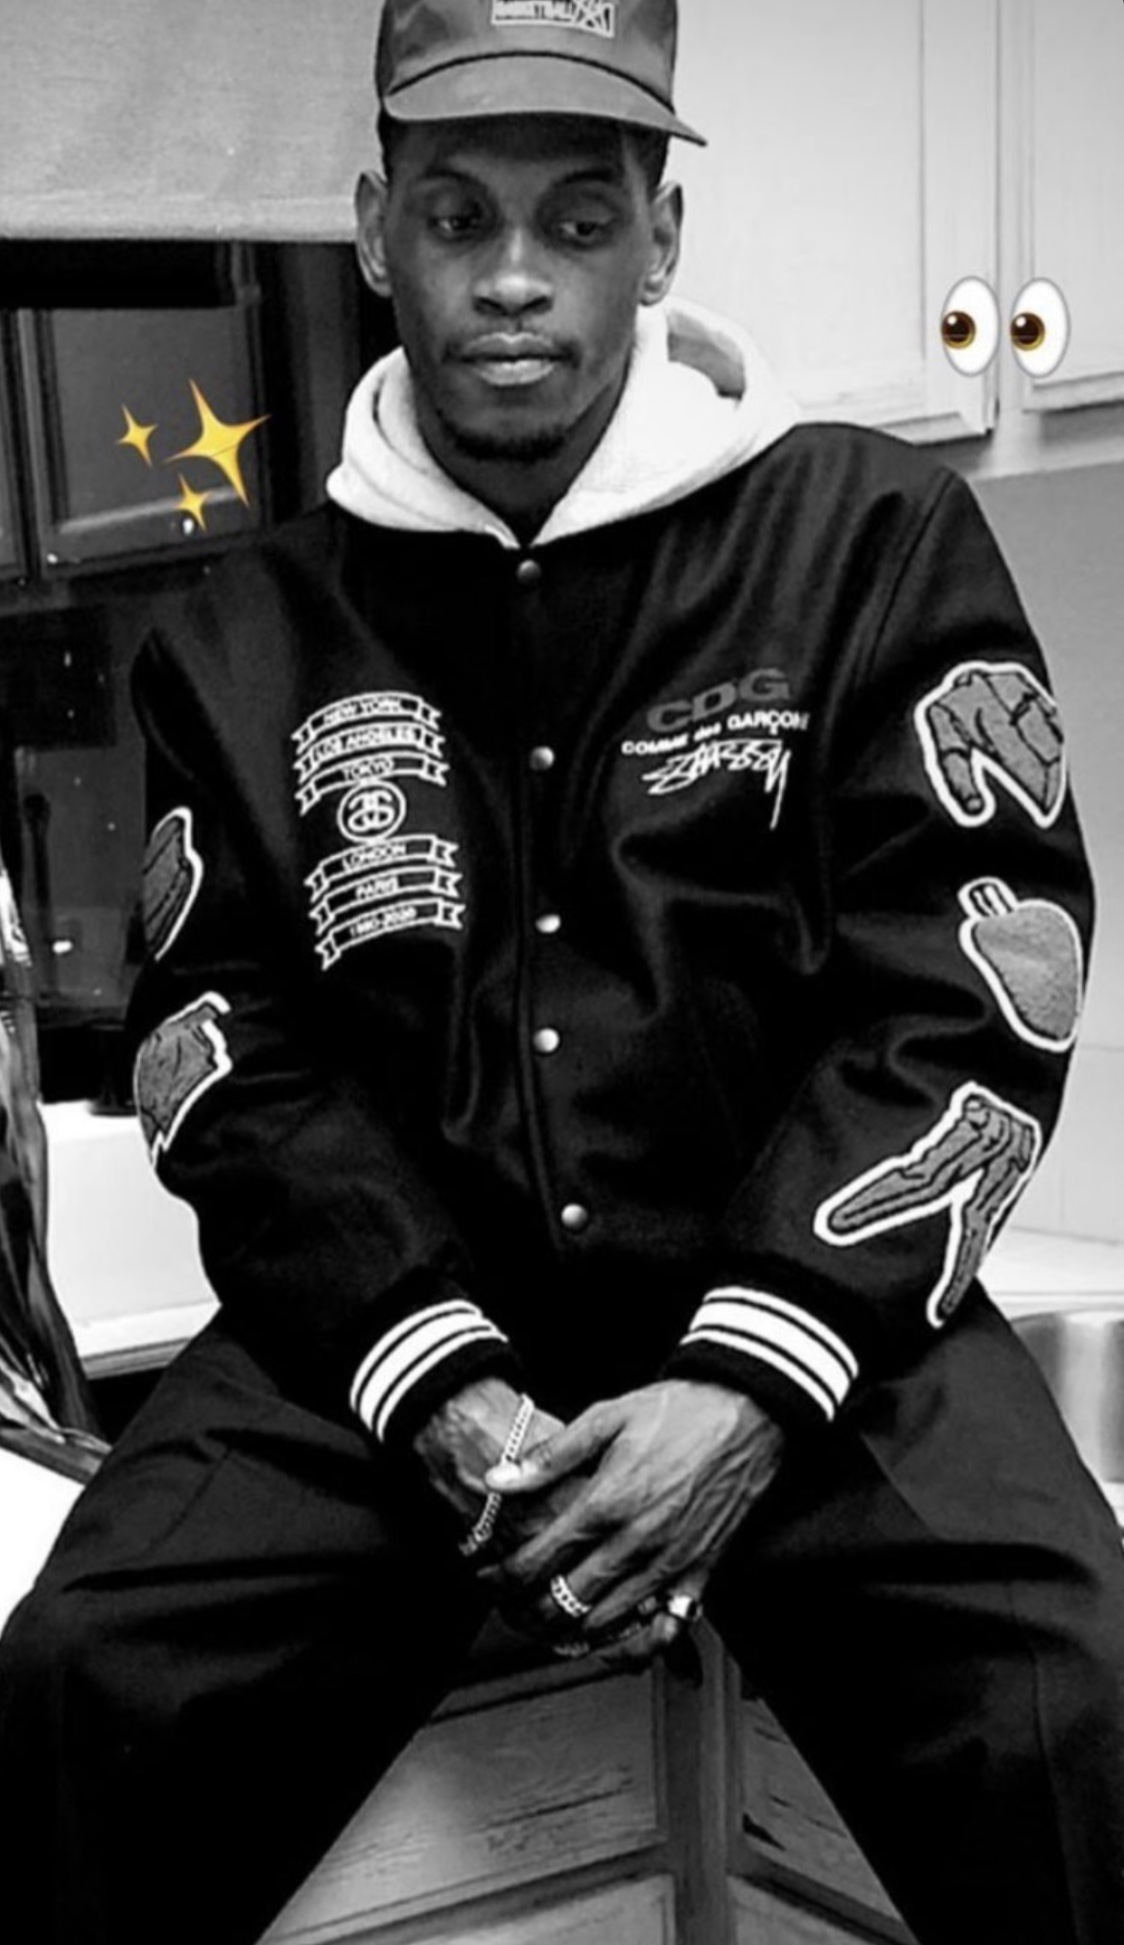 stussy-comme-des-garcons-40th-anniversary-varsity-jacket-release-20200115